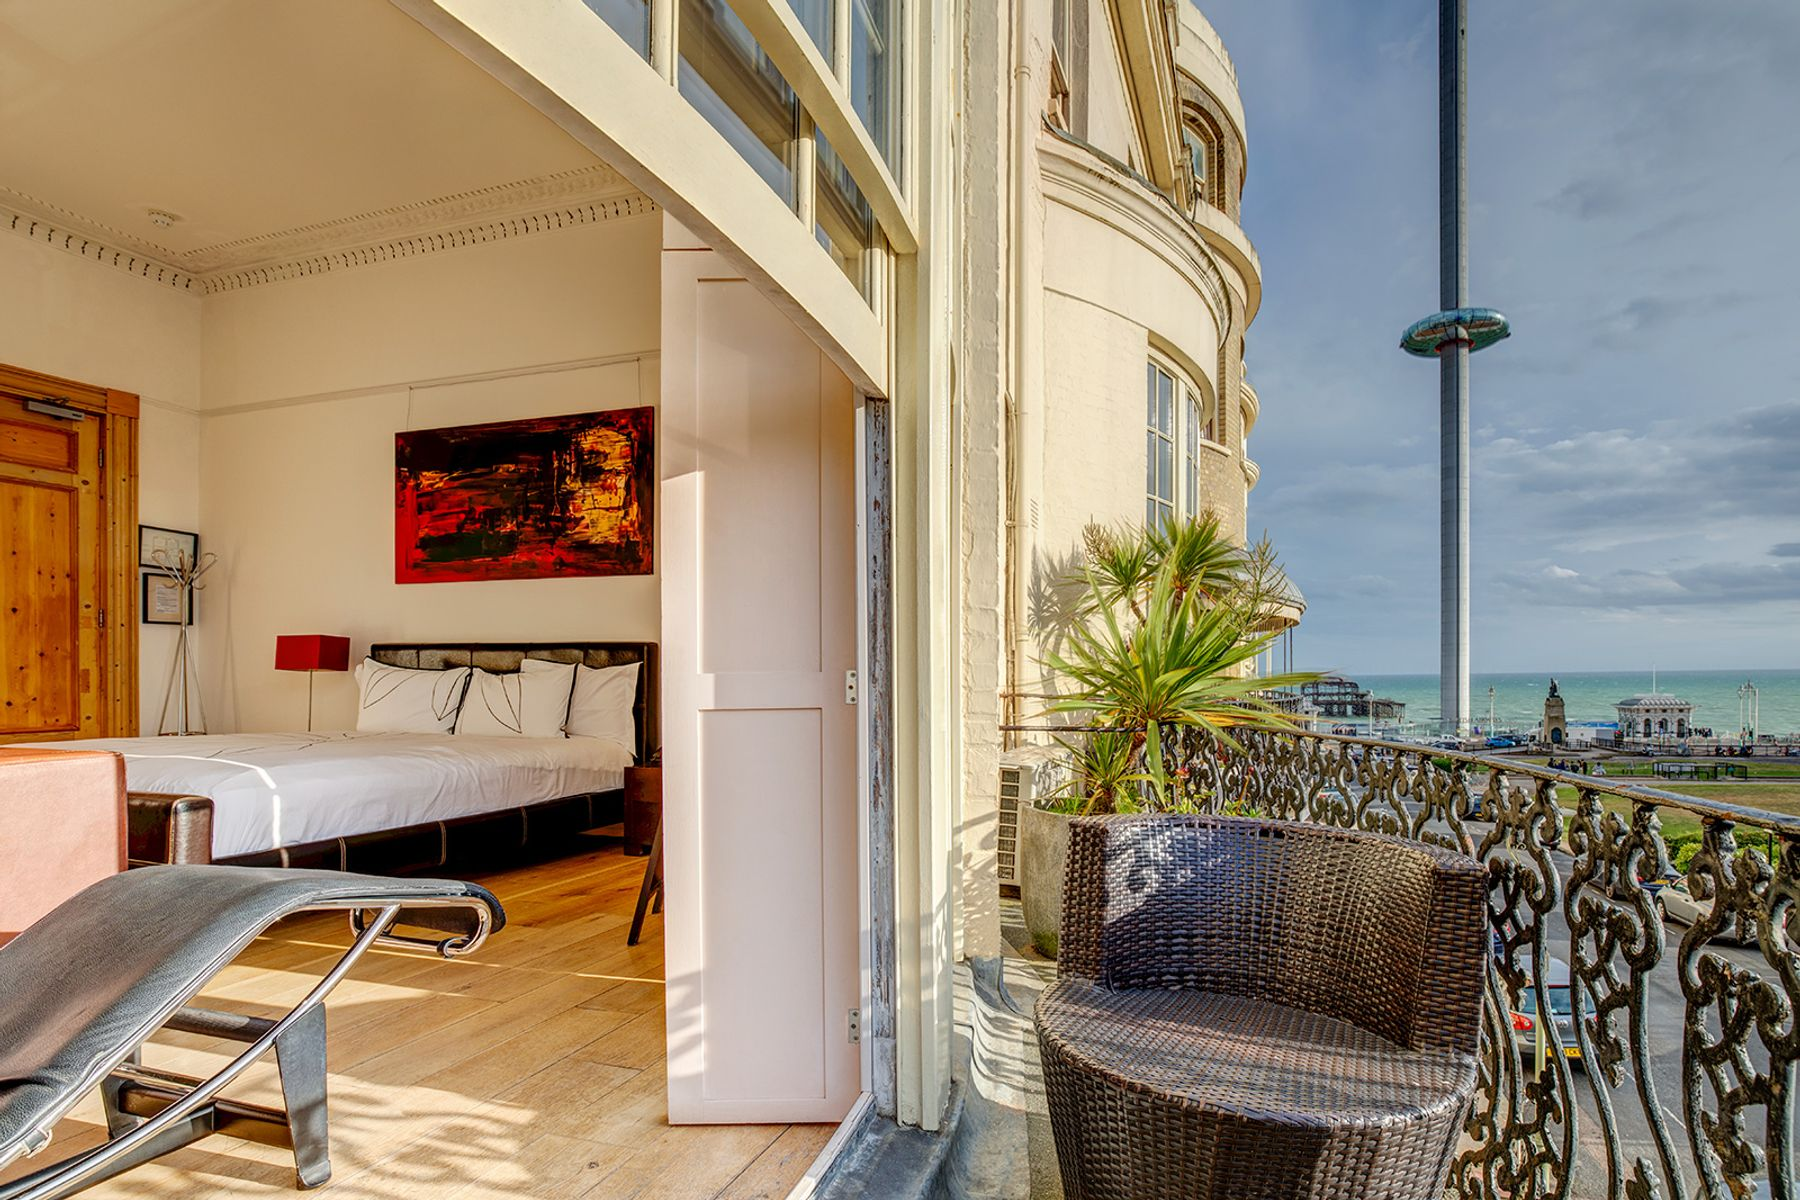 Hotel Una is one of the best hotels in Brighton for a beach break